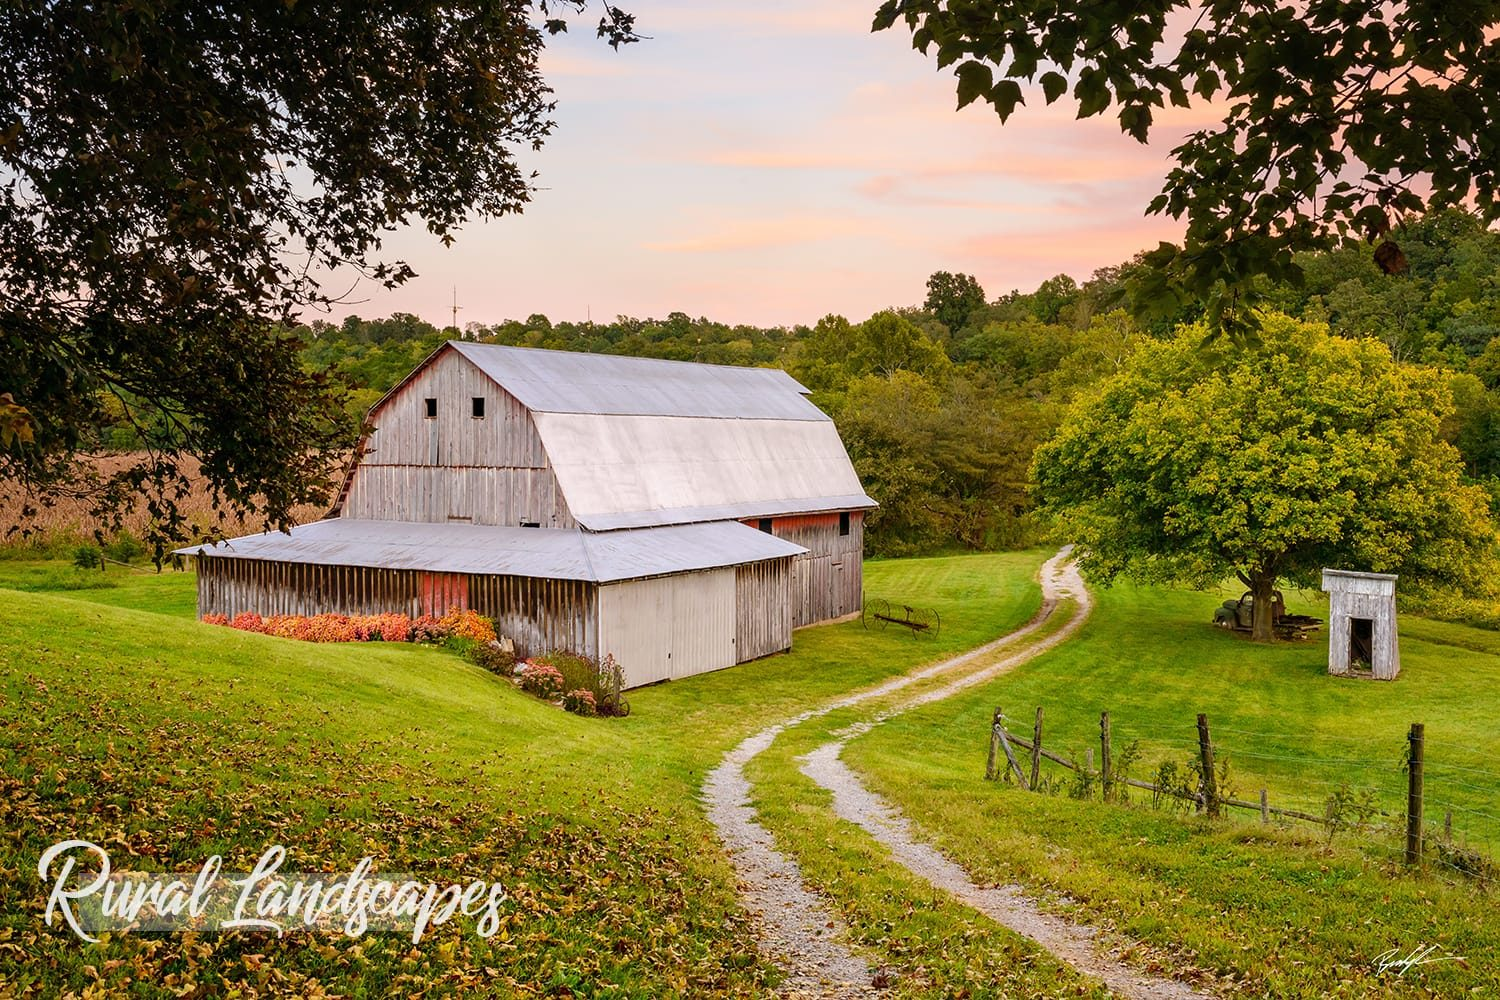 Home and Office Decor Rural Landscape Photography